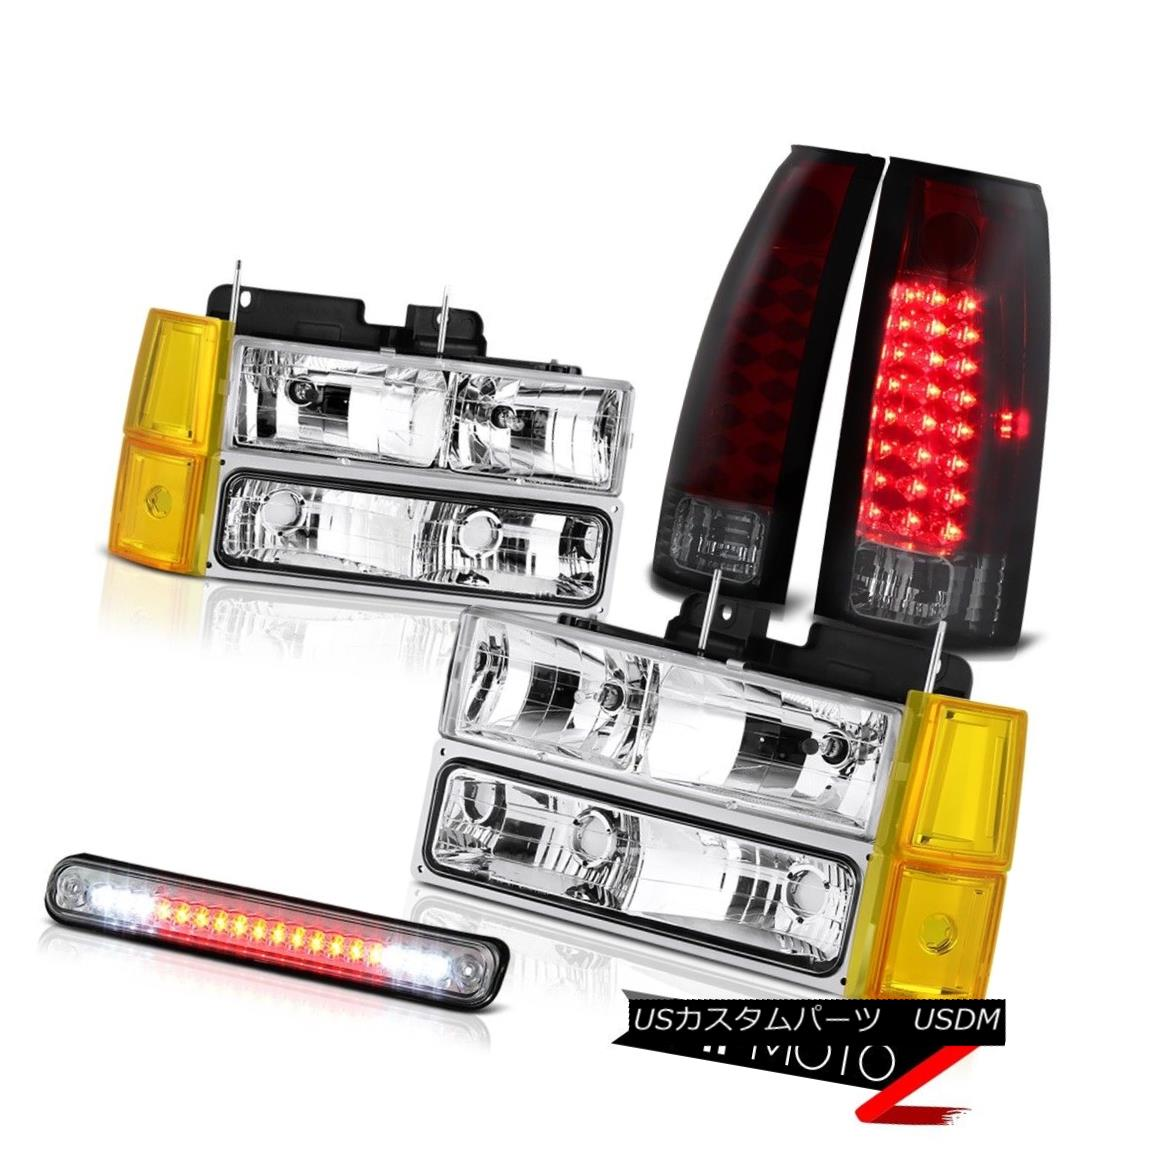 テールライト 1994-1998 GMC Sierra Chrome Headlights Bumper 3RD Brake Lamp Parking Lights SMD 1994-1998 GMC Sierra Chromeヘッドライトバンパー3RDブレーキランプパーキングライトSMD